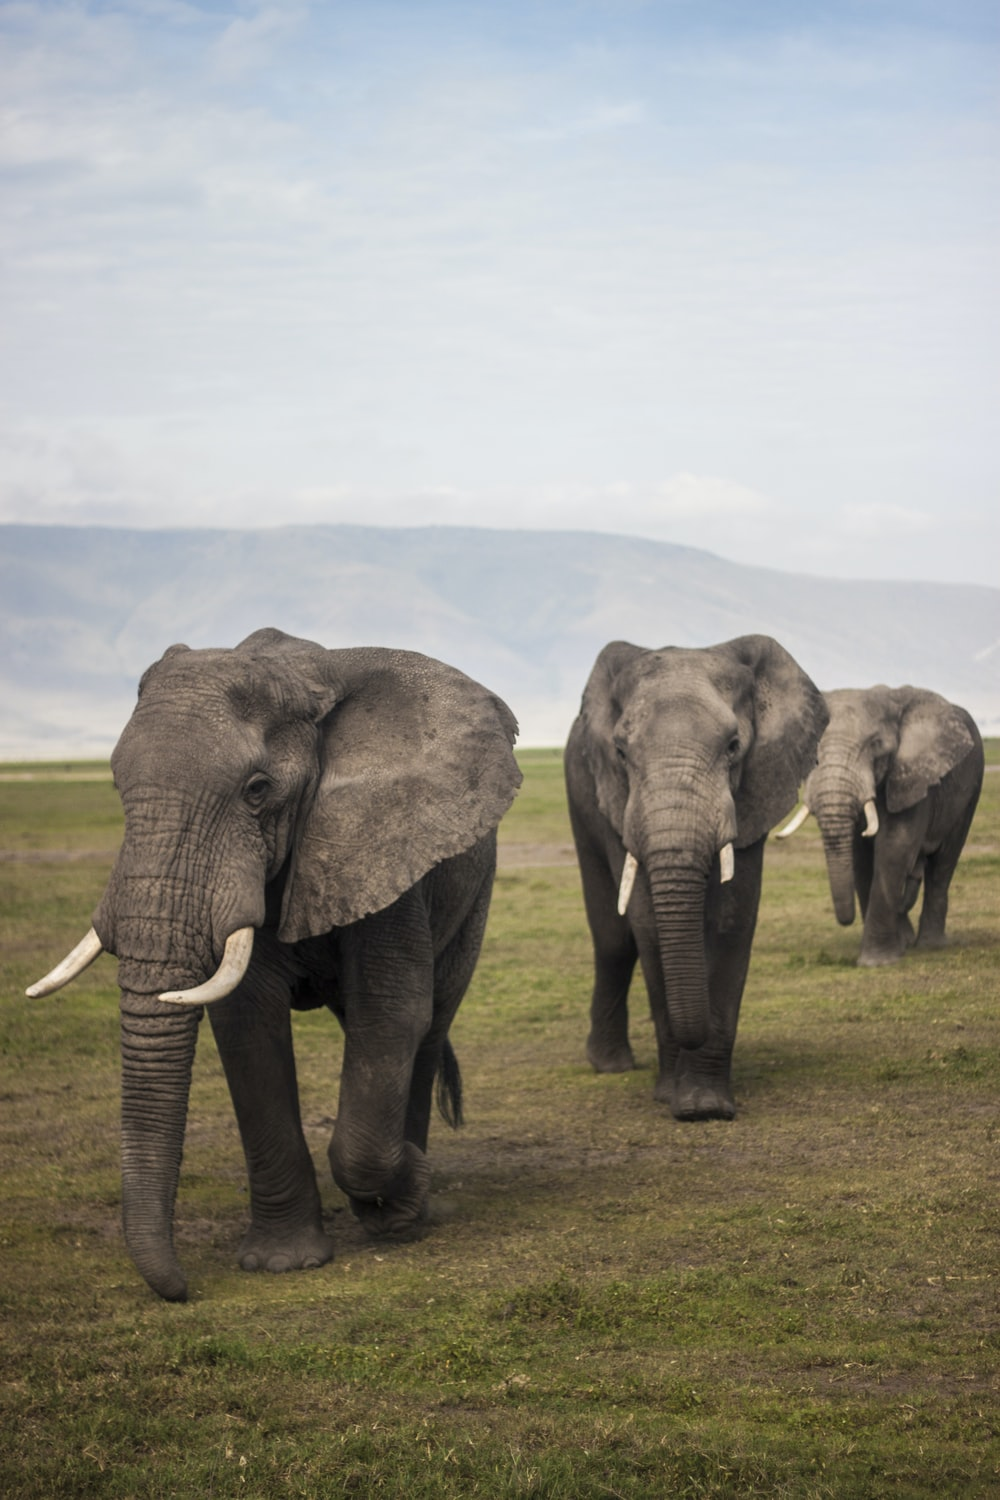 three elephants walking on grass field during day